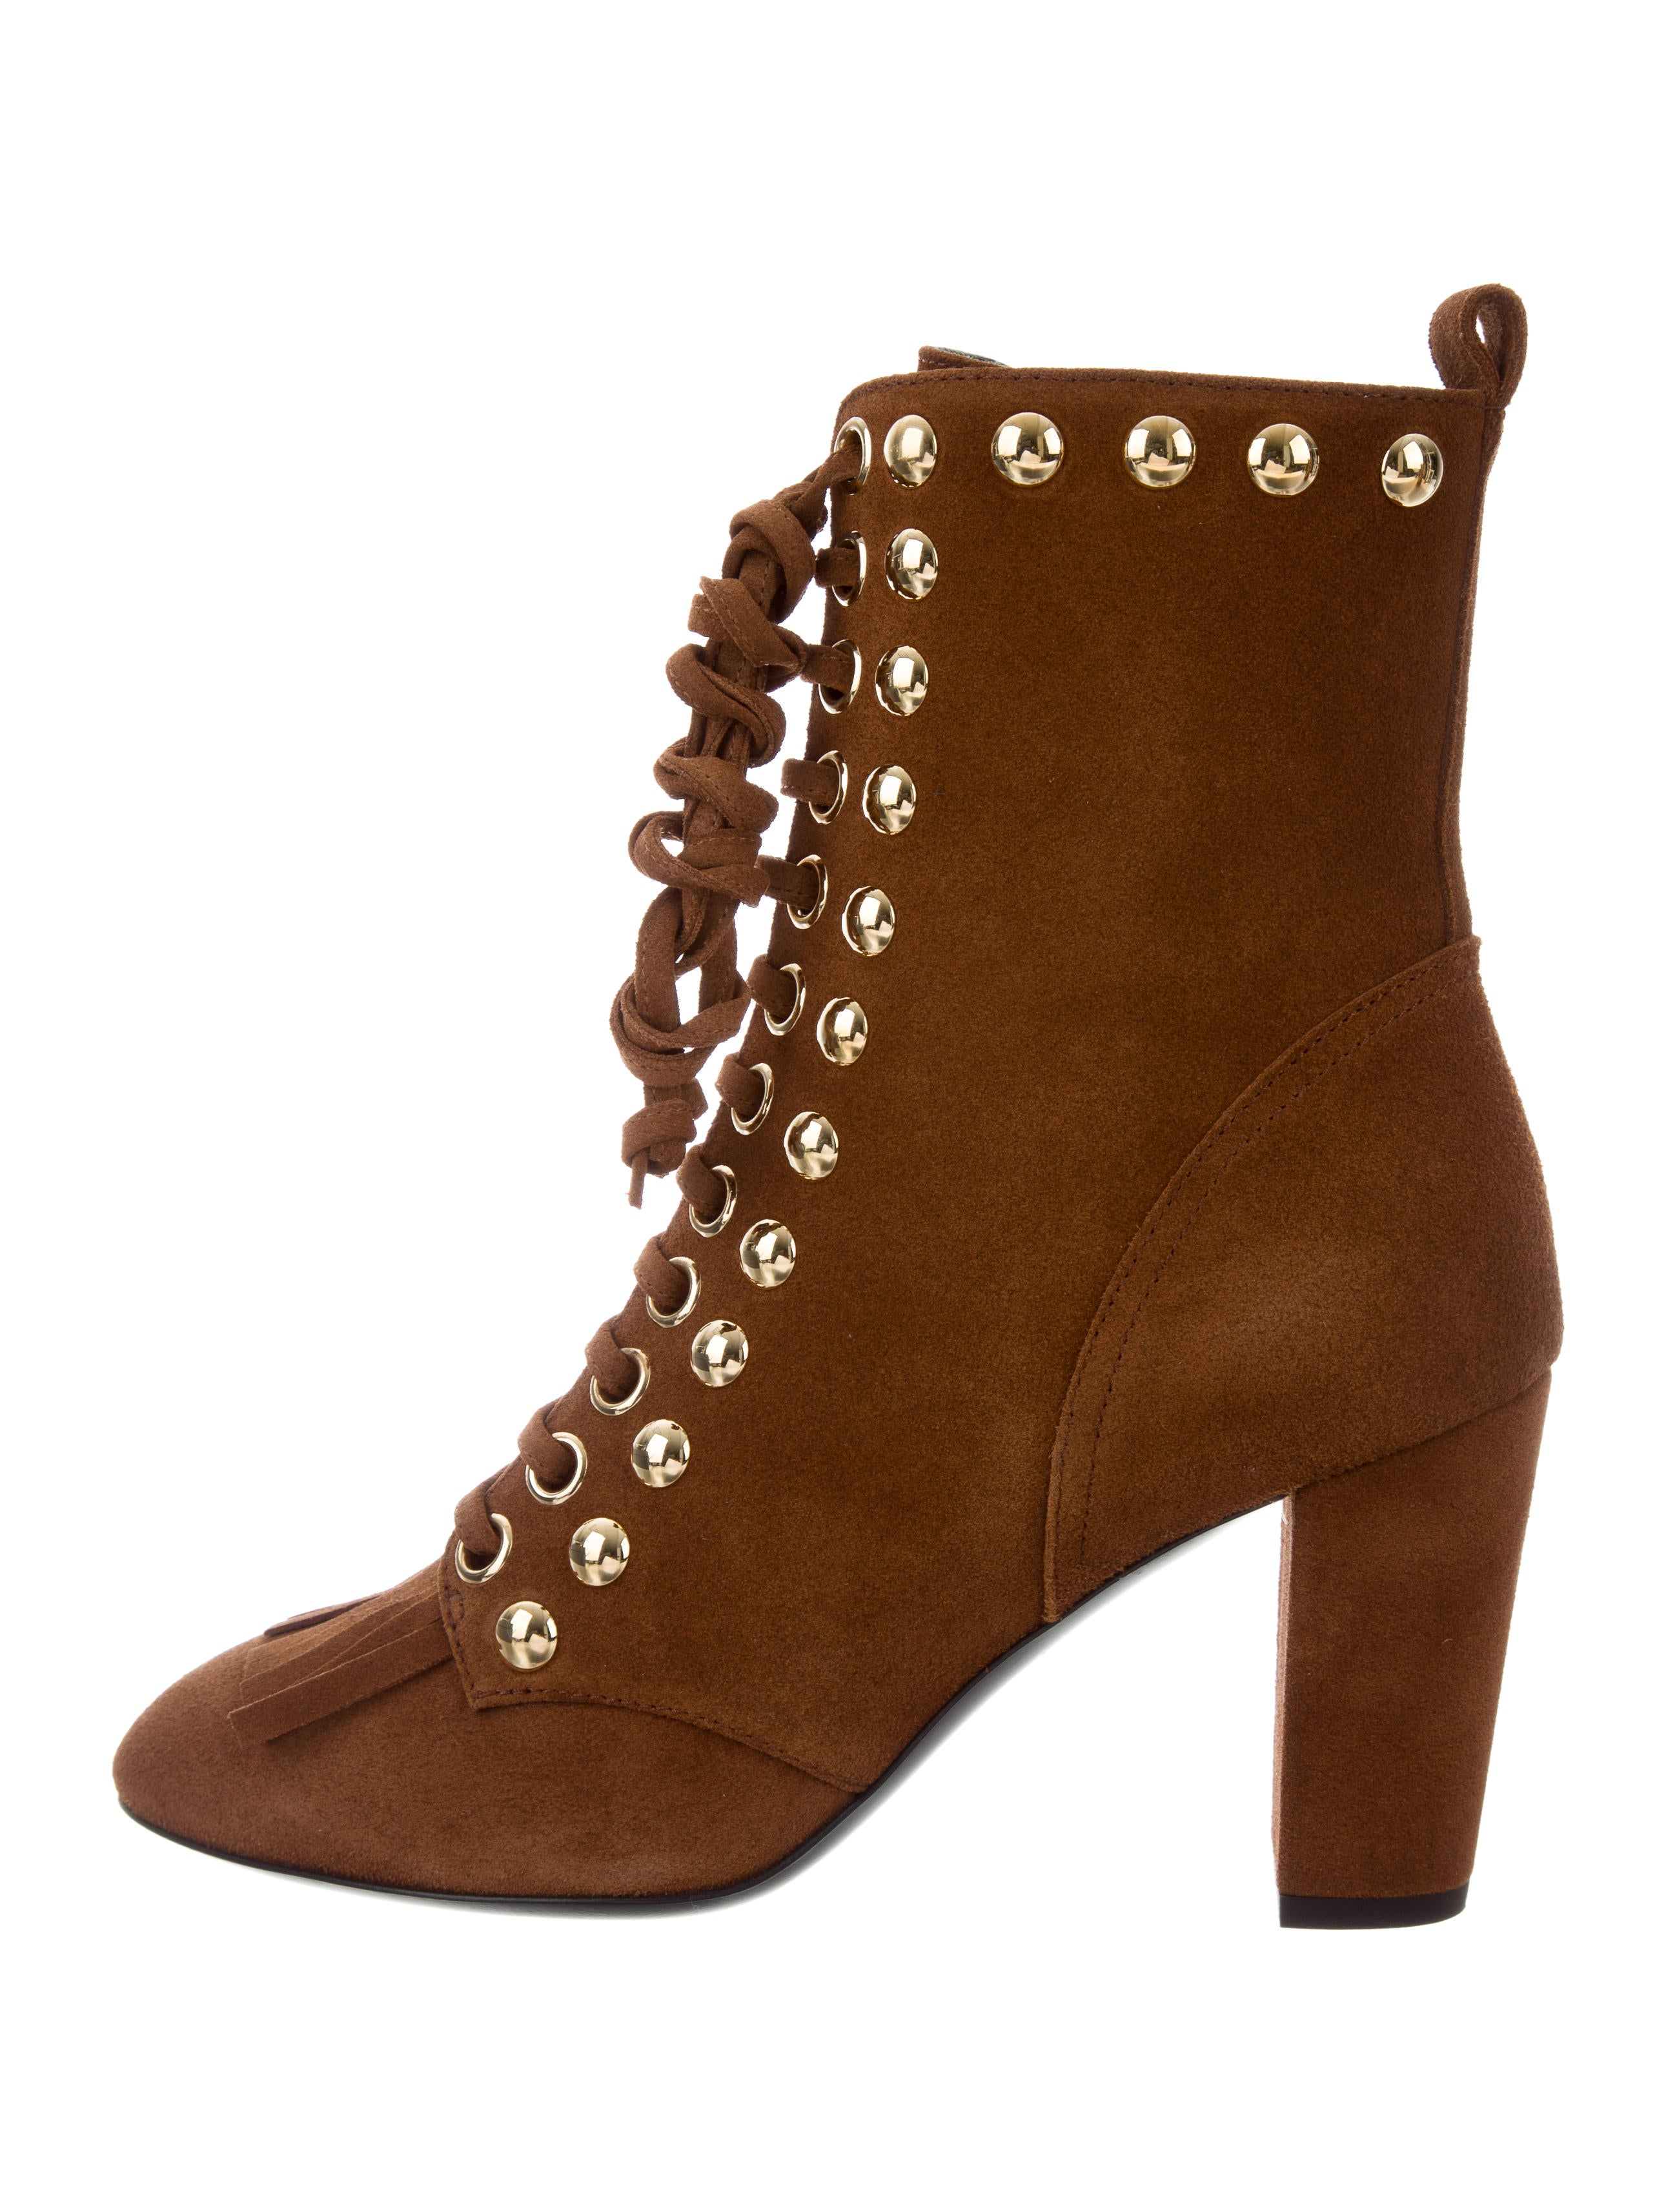 Giuseppe Zanotti Bebe Embellished Ankle Boots w/ Tags shop for online vwn8I